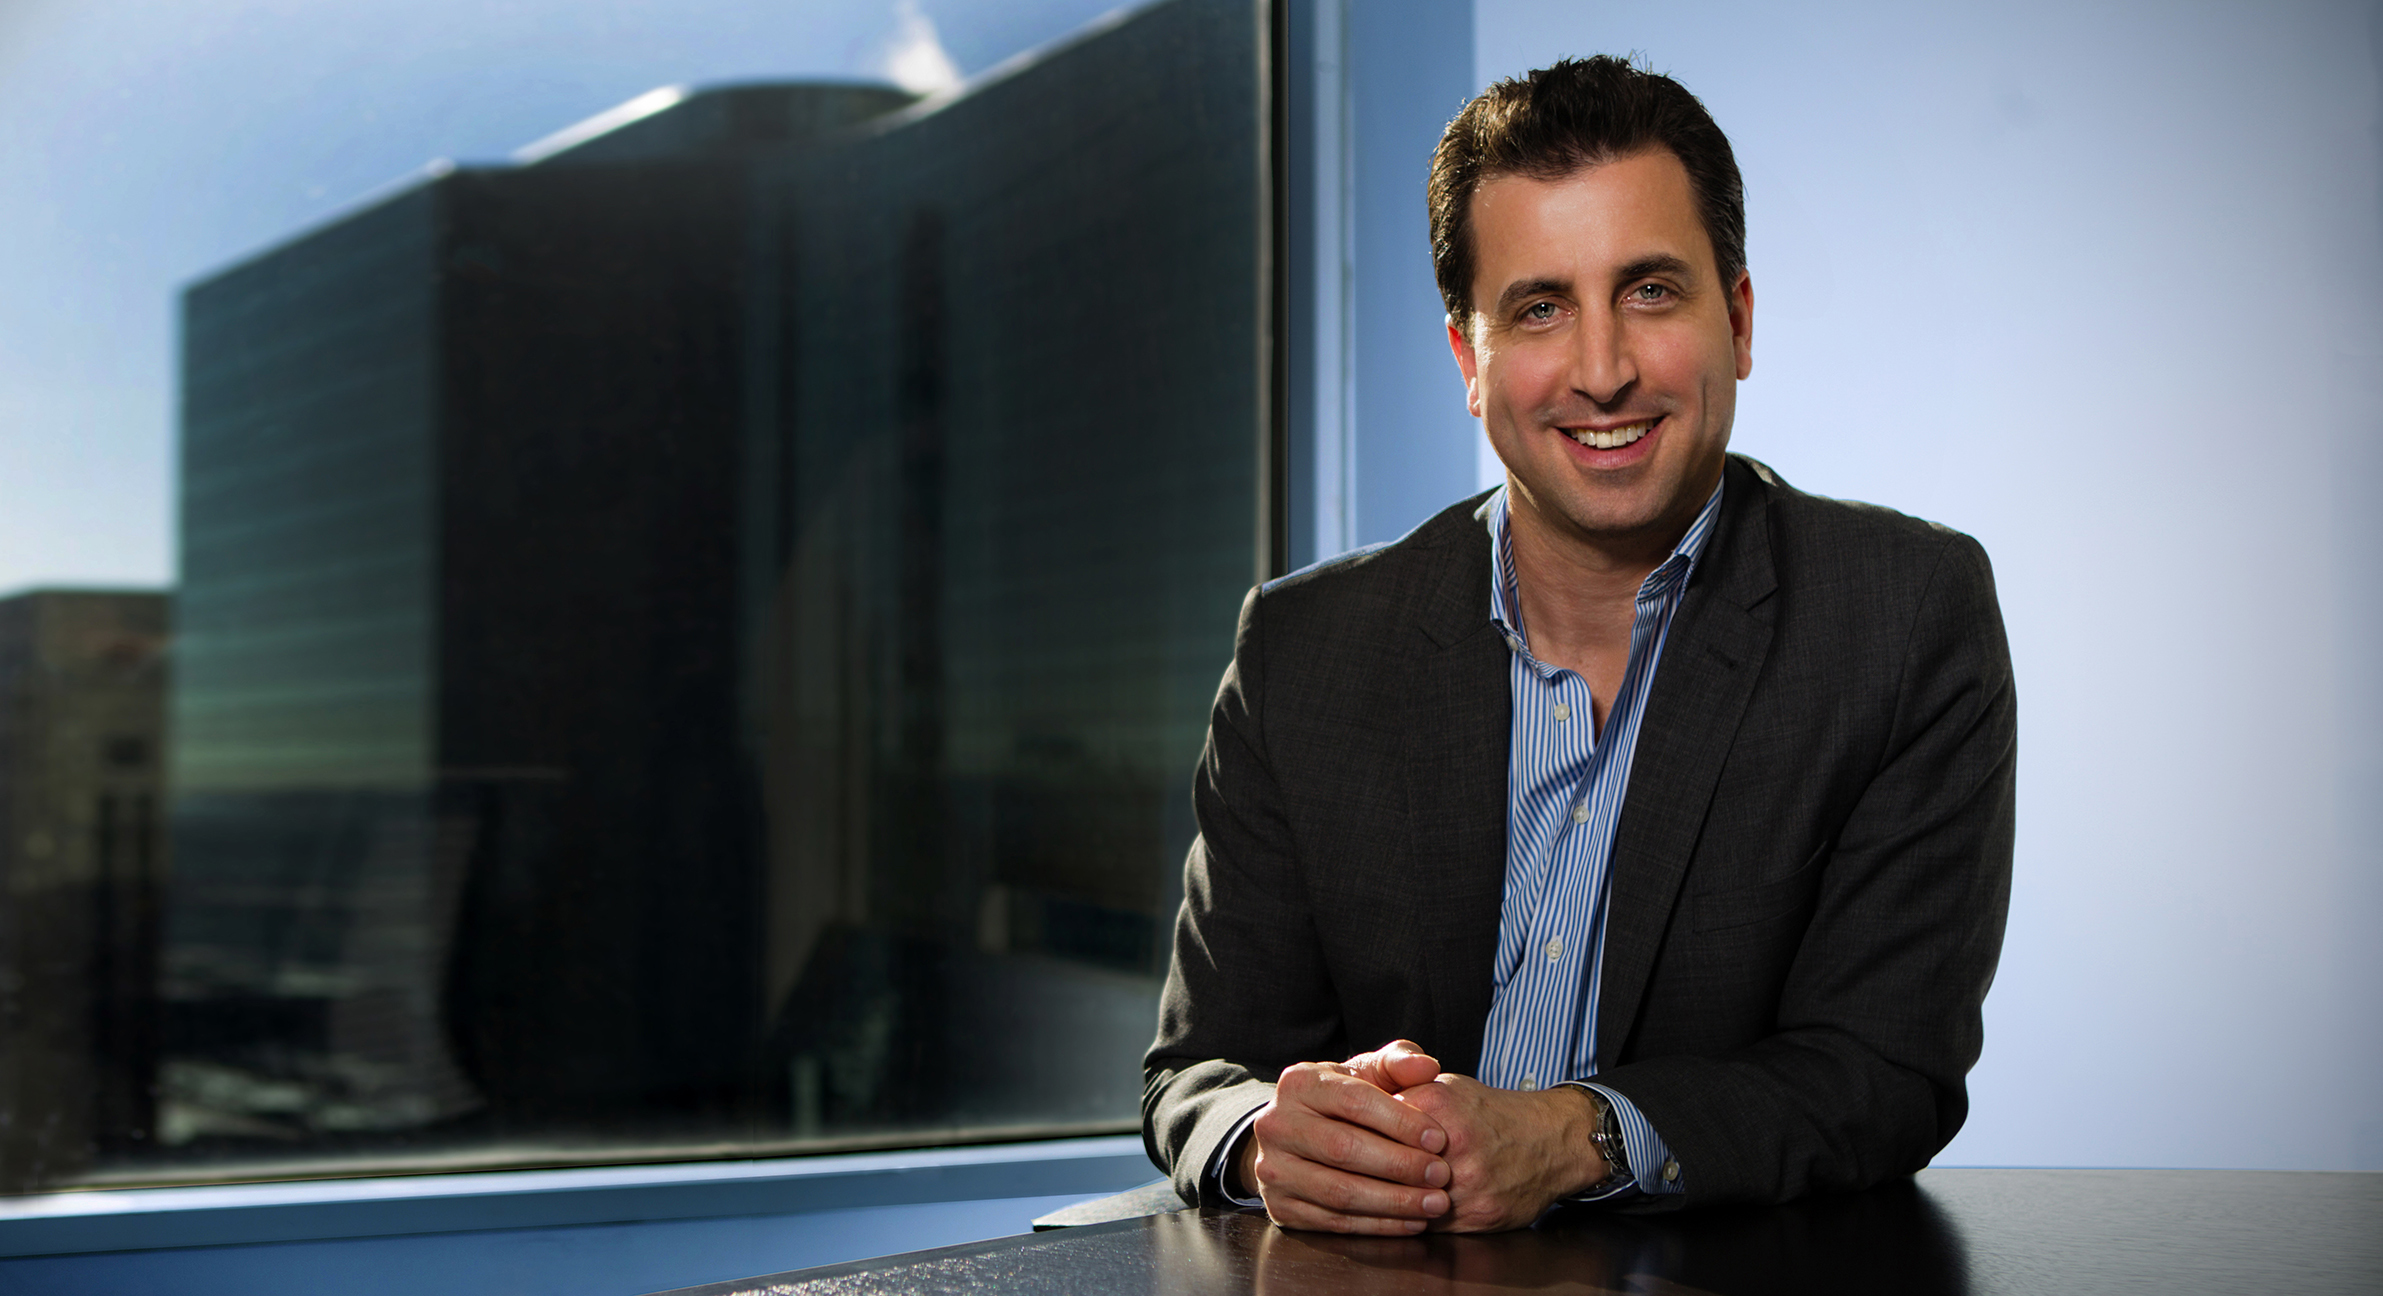 Siteworx looks to expand business development reach in 2014 with promotion of Todd Hatley to VP, Business Development. (Photo: Business Wire)